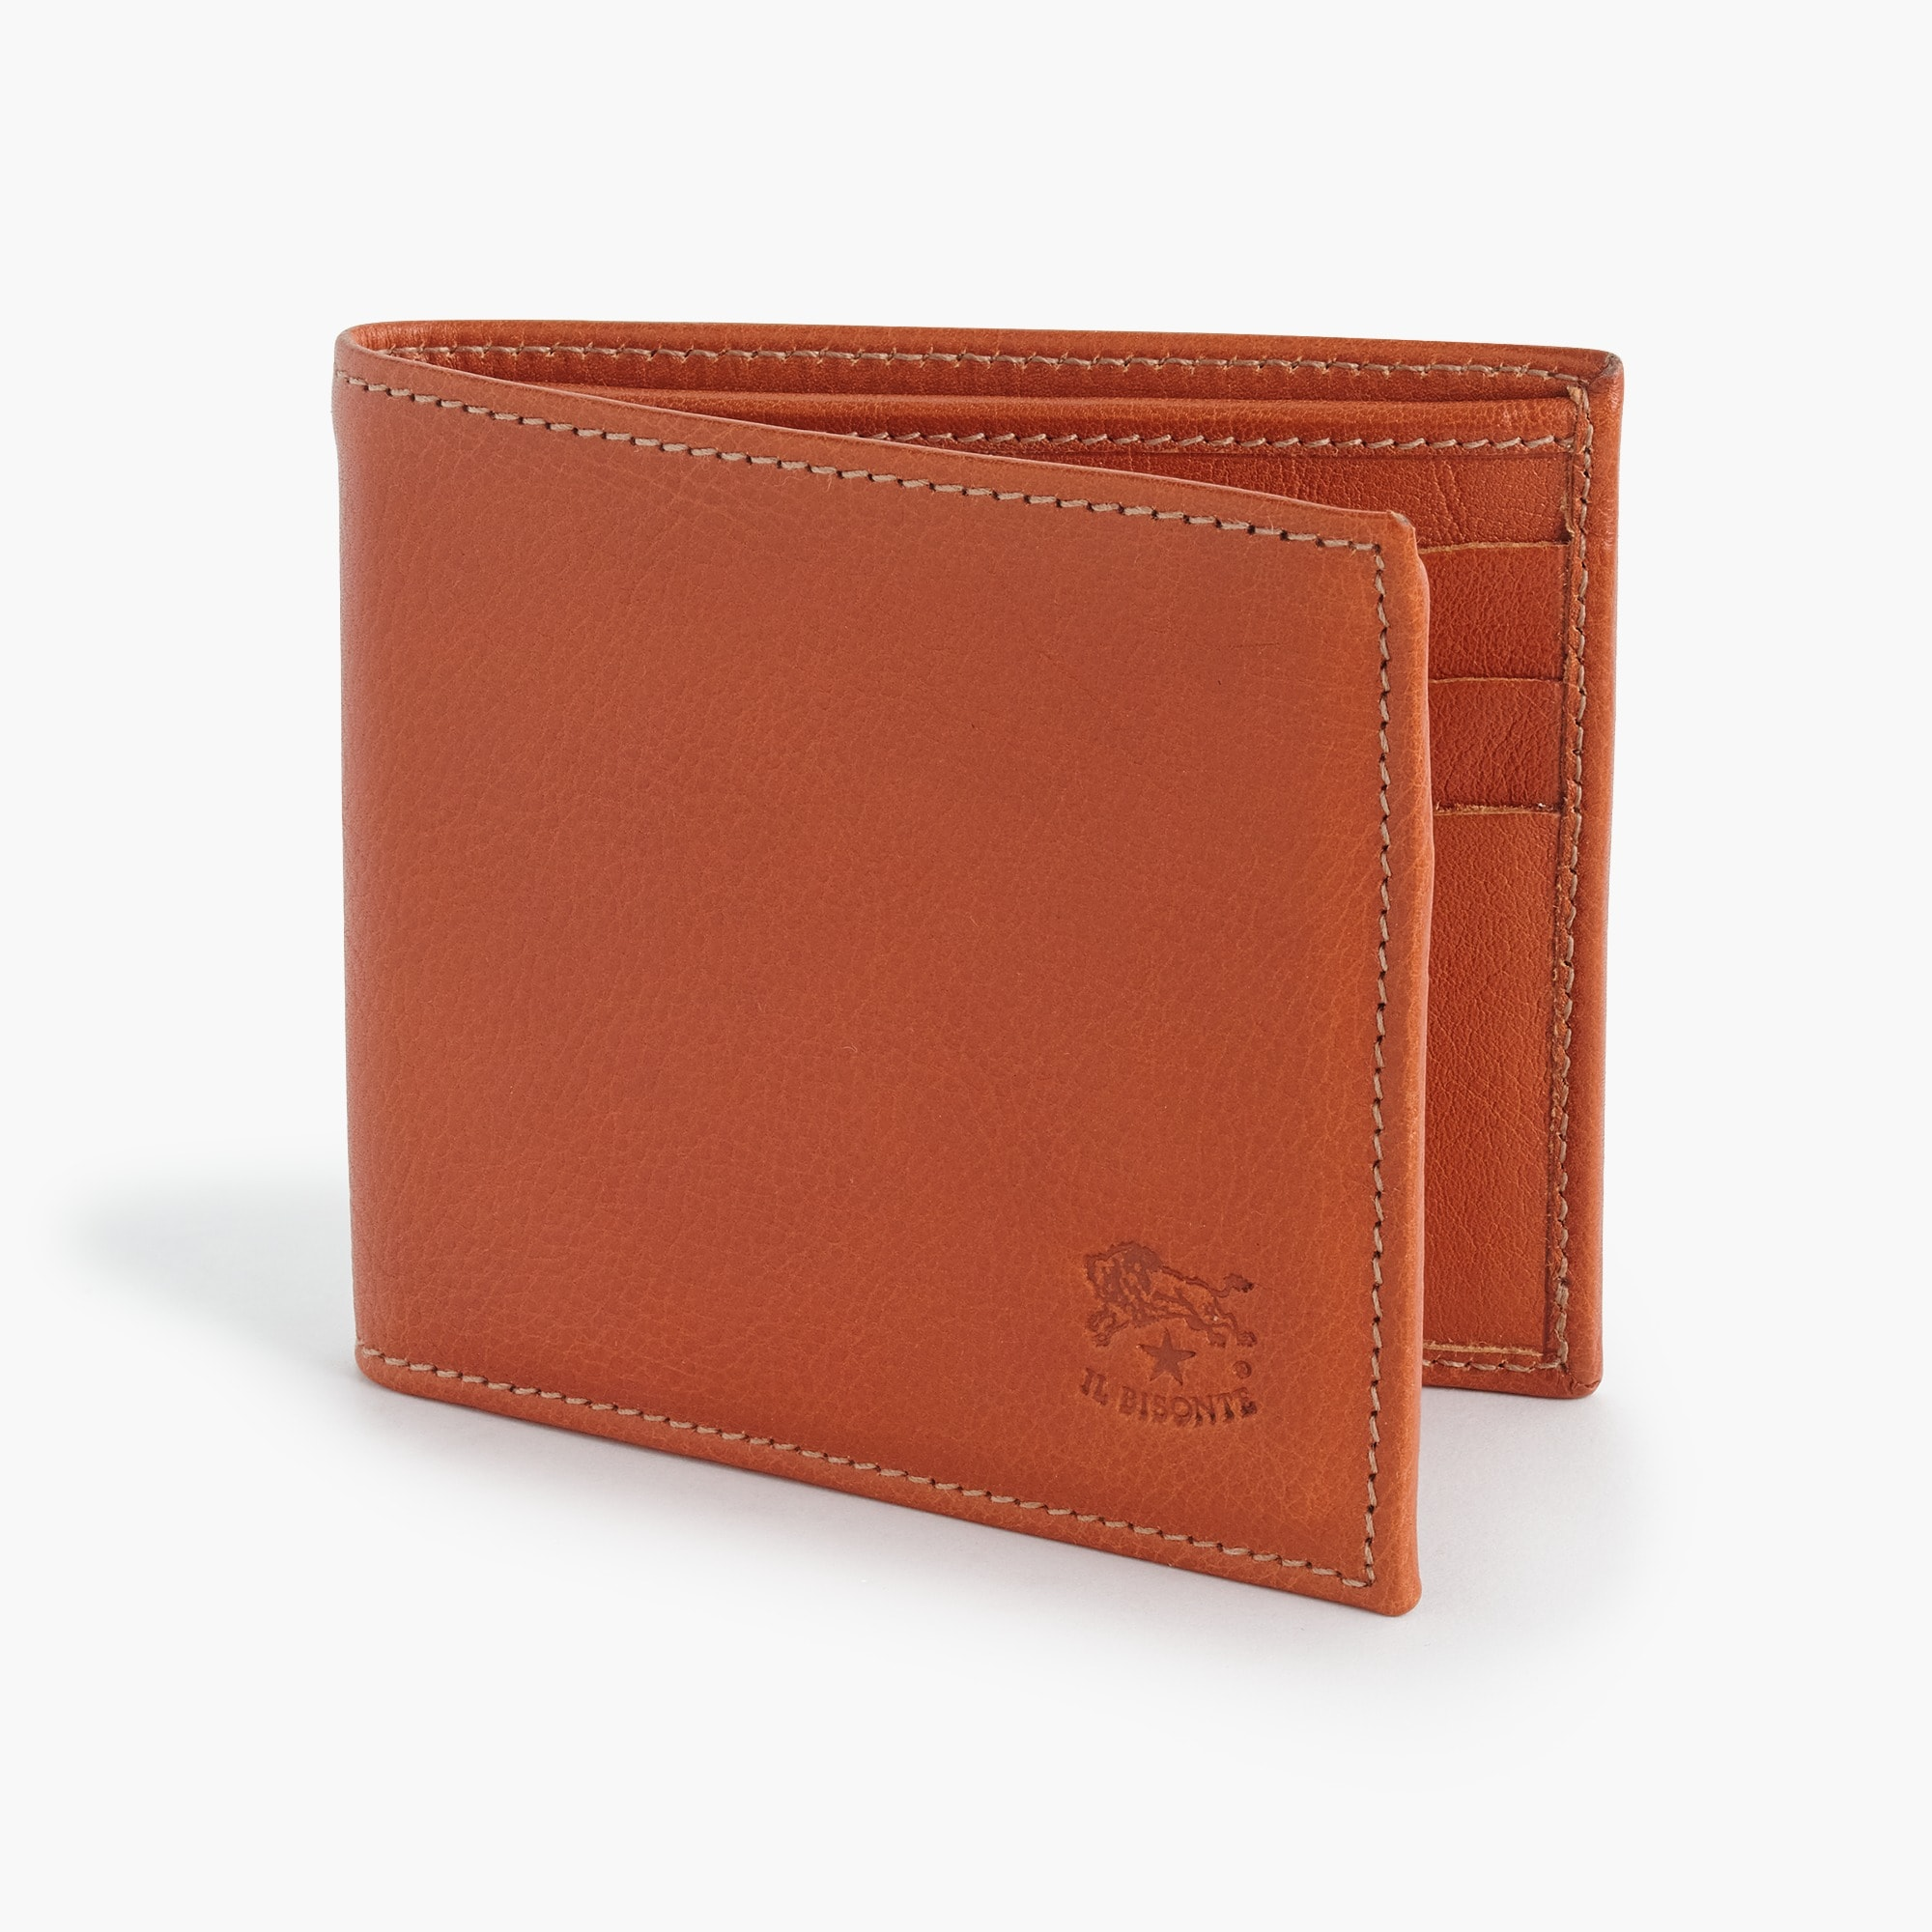 IL Bisonte® leather card wallet men j.crew in good company c